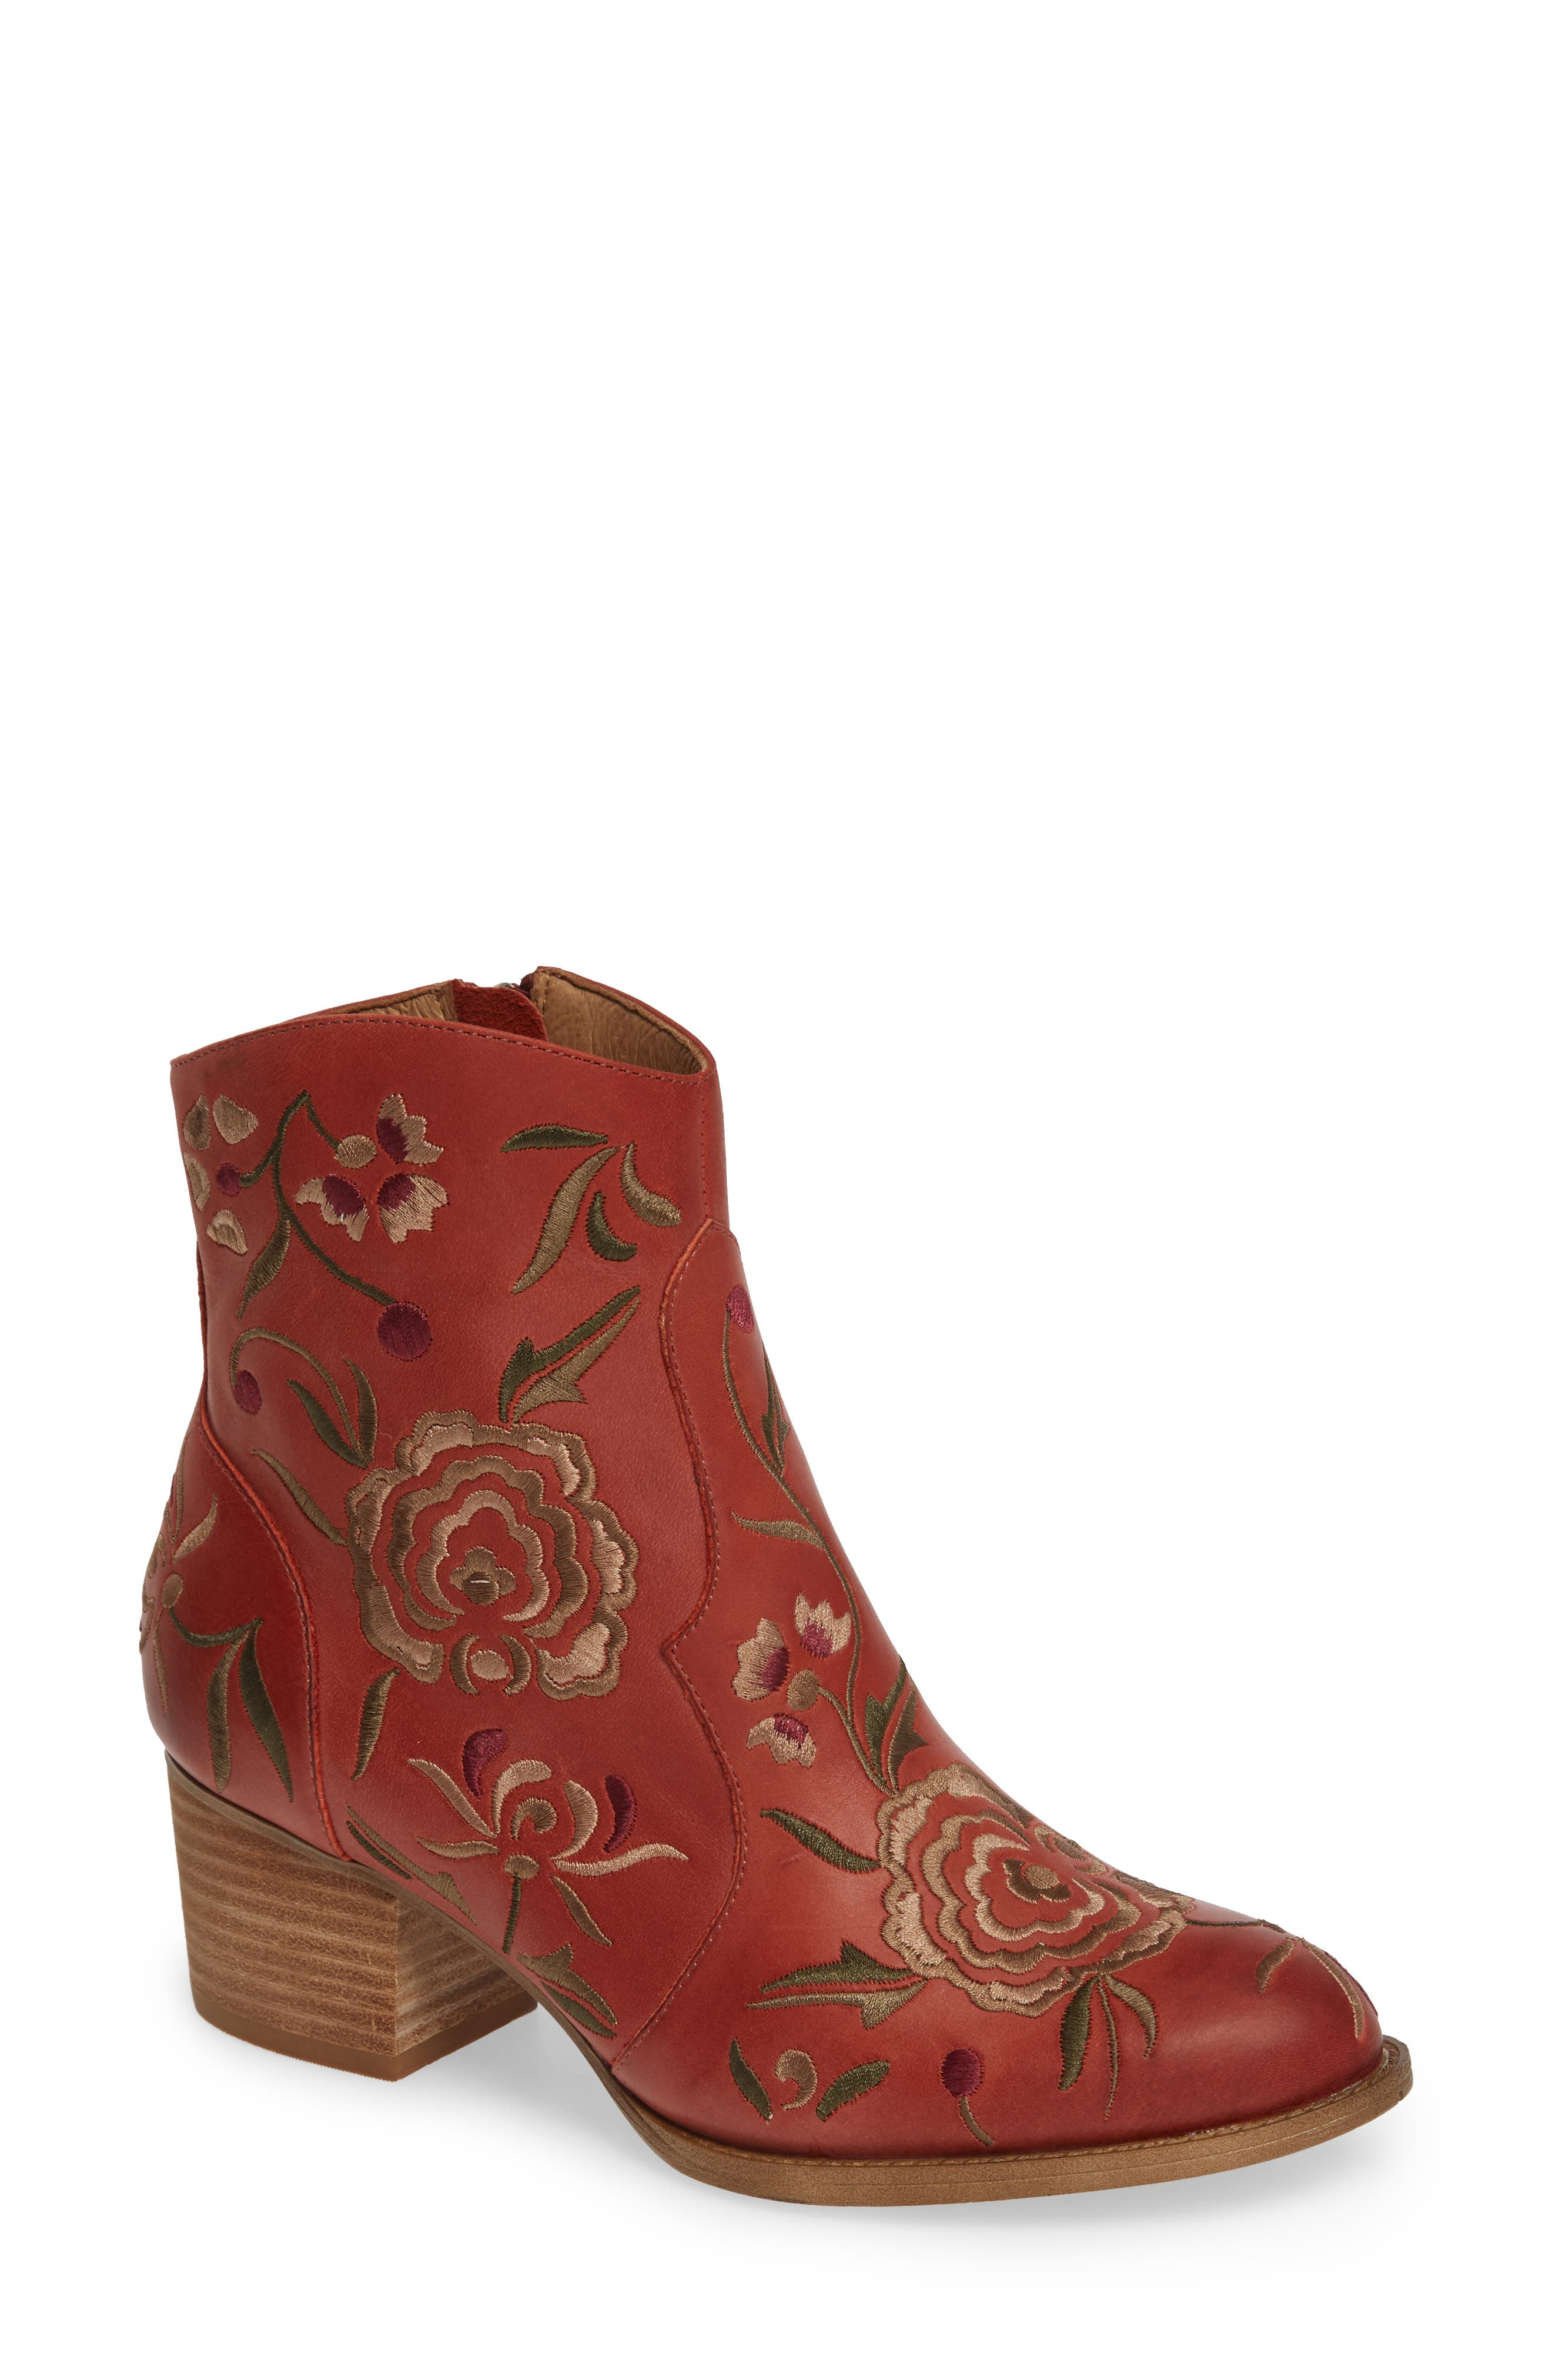 Sofft Westmont Floral Embroidered Bootie- Red